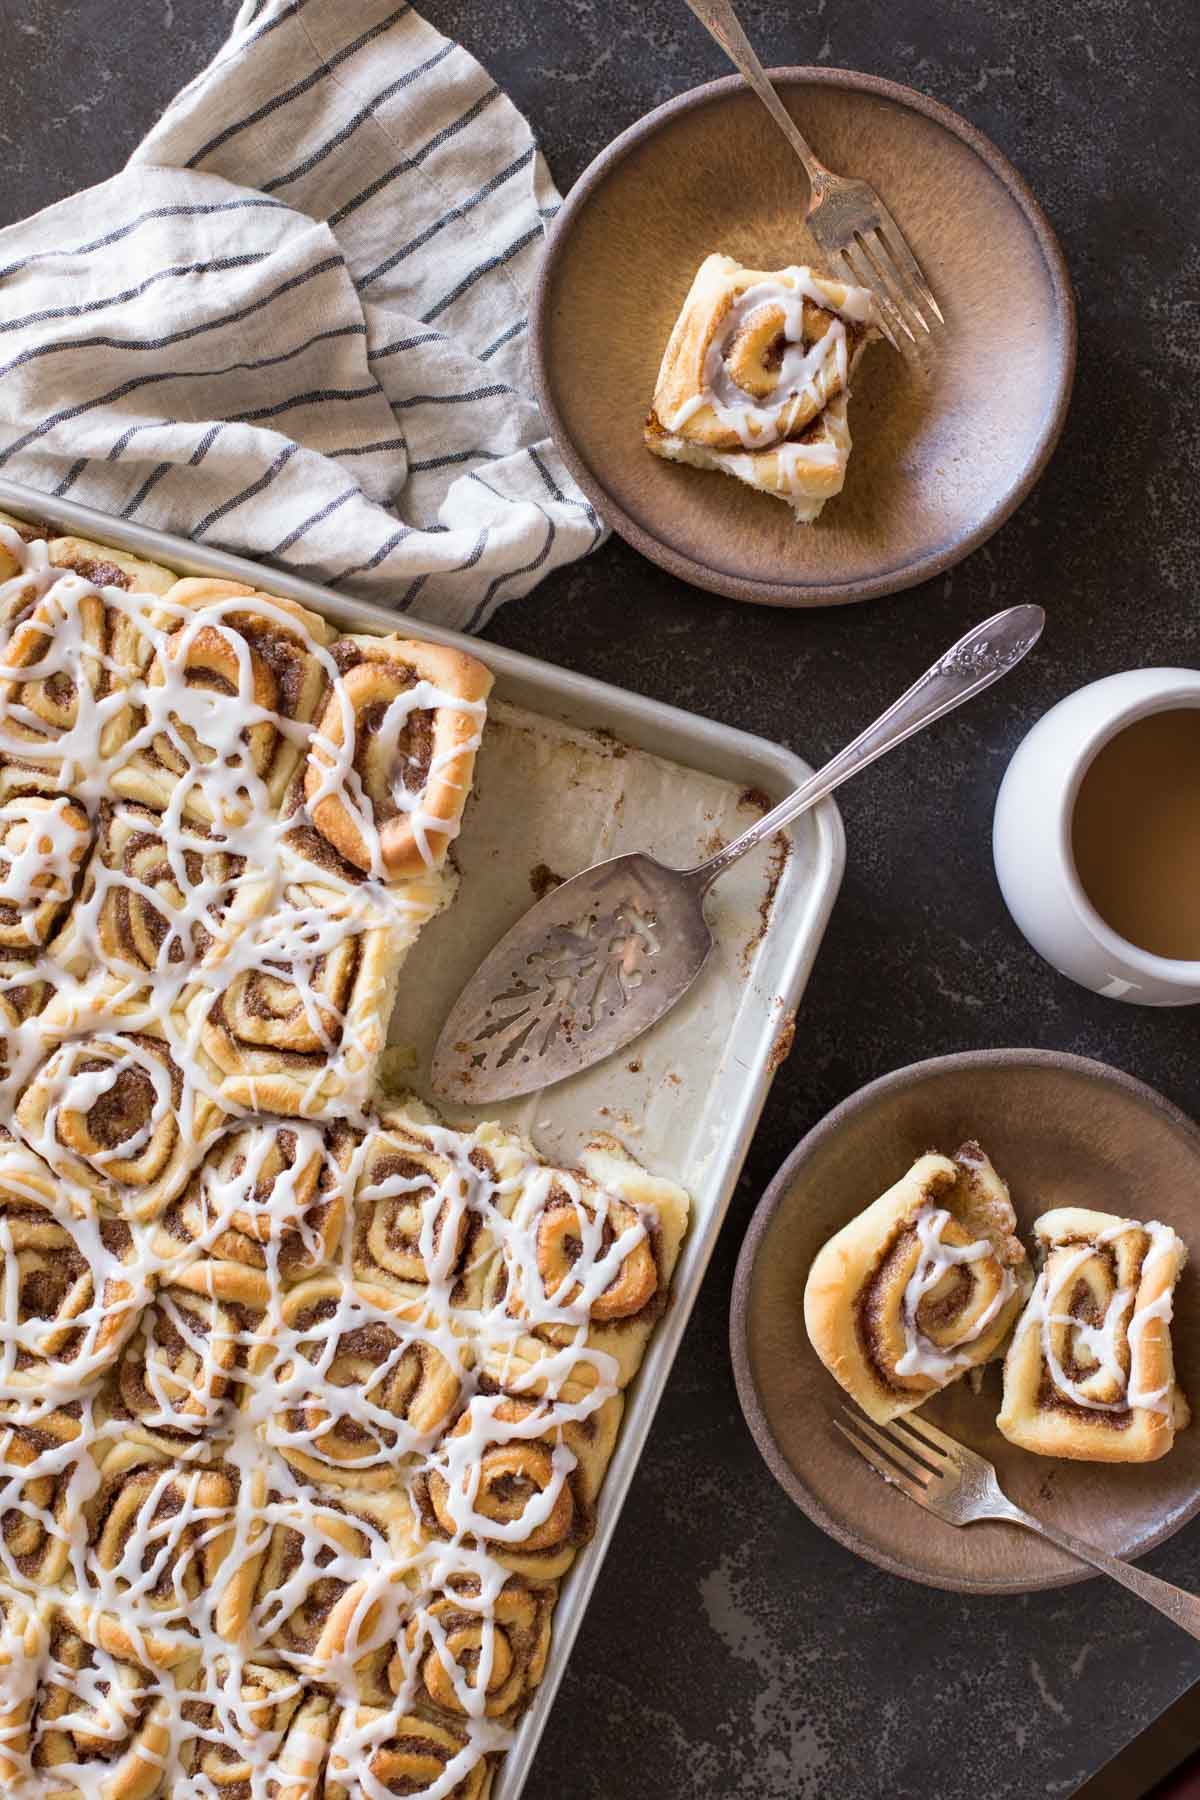 Sheet Pan Cinnamon Rolls on two plates with forks, sitting next to a cup of coffee and the baking sheet of the rest of the cinnamon rolls with a serving utensil.